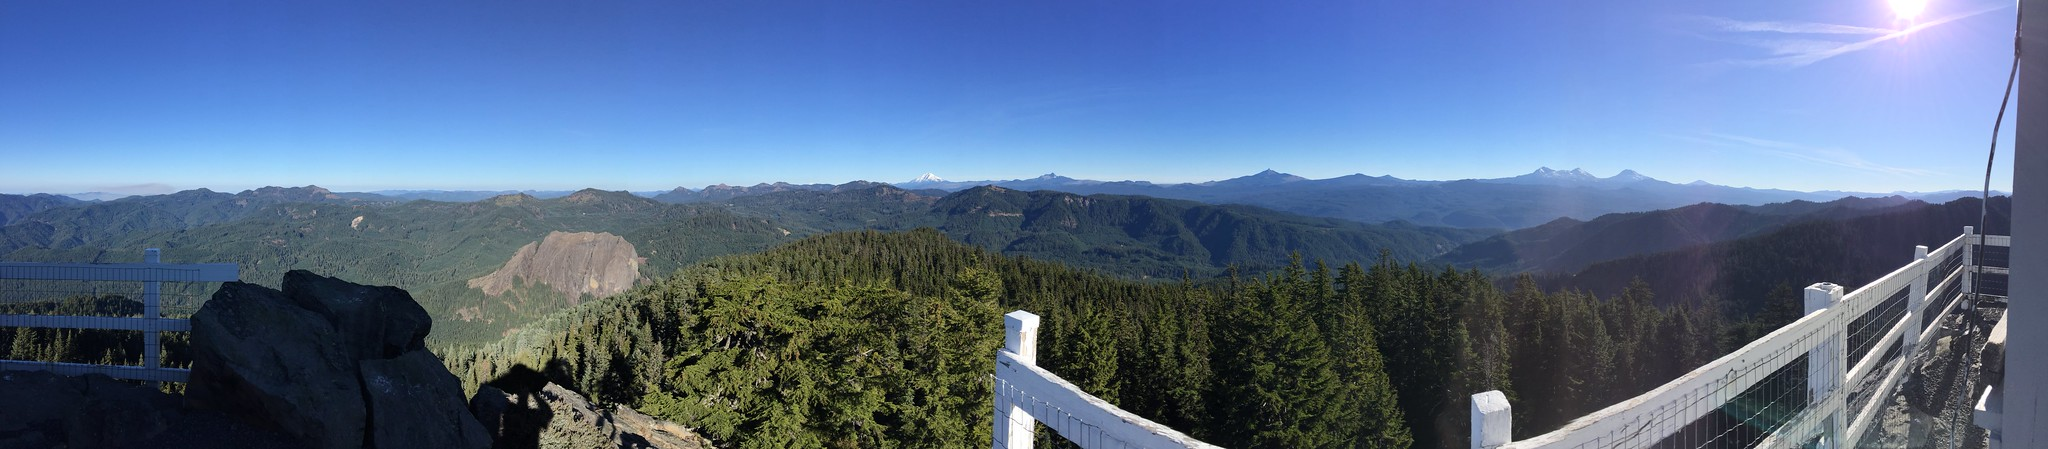 Panoramic from the top of the lookout